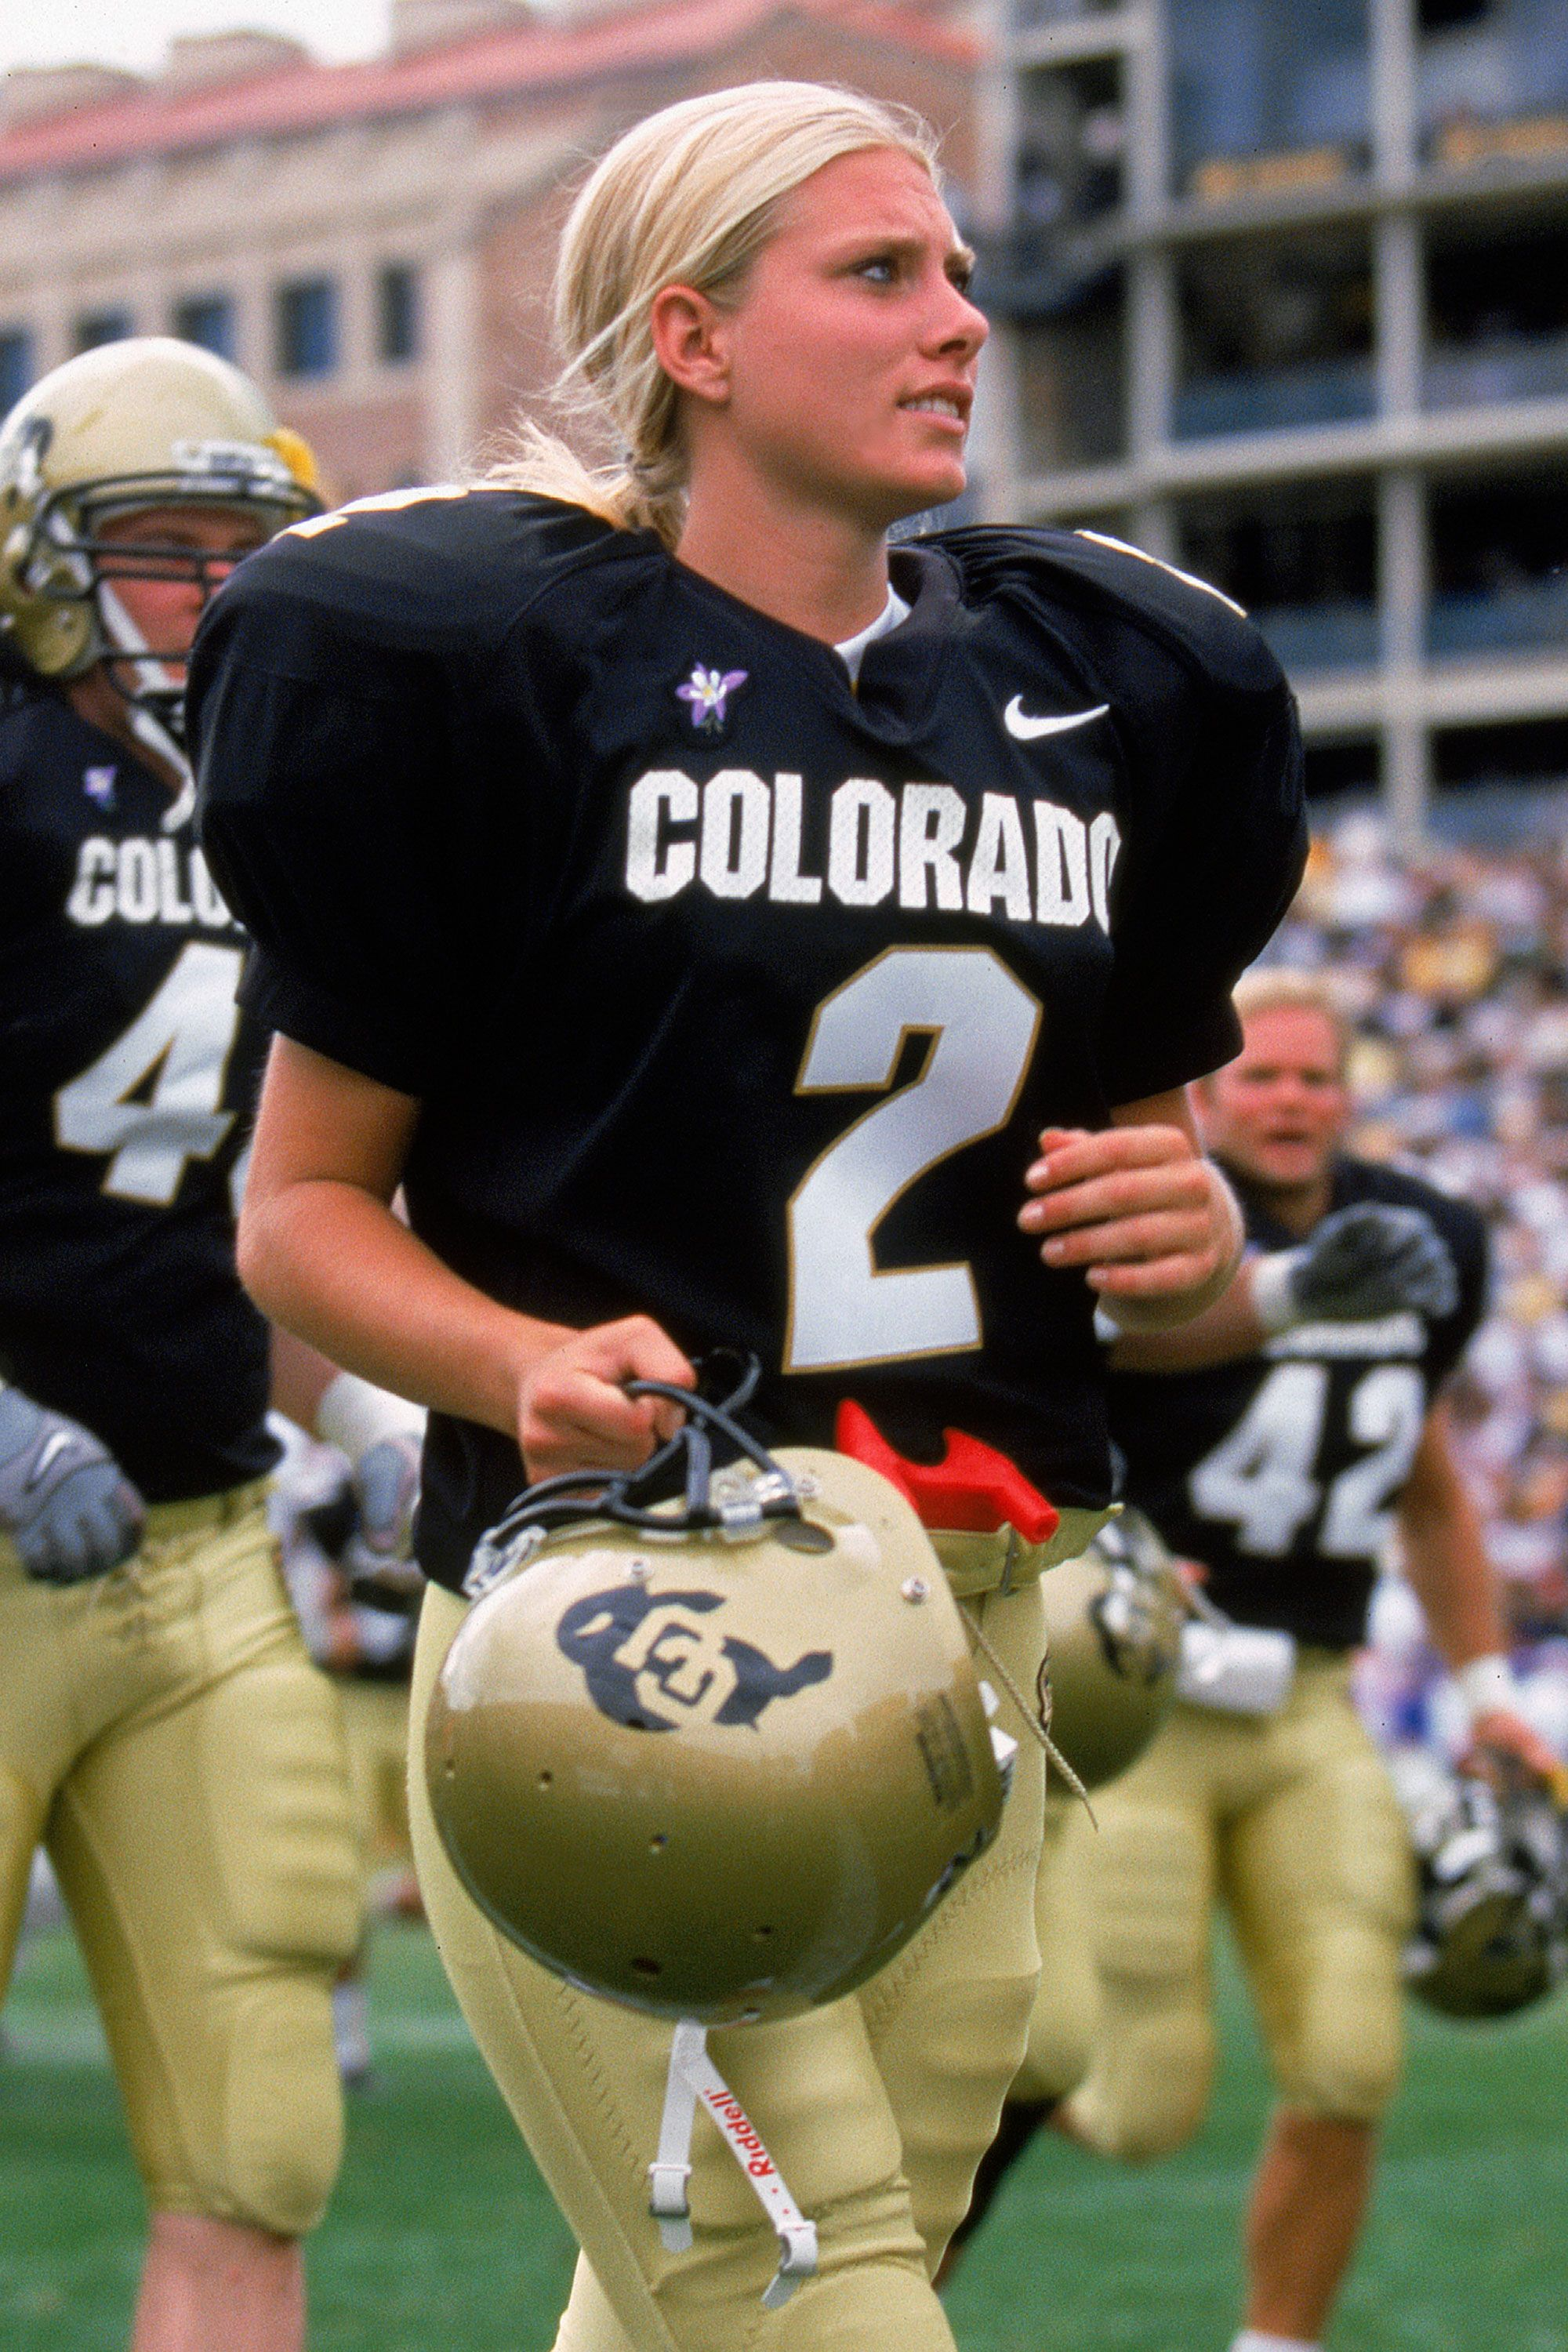 """<p>On August 30, 2003, Katie Hnida became the first woman to score points in an NCAA Division 1-A college football game as kicker for theNew Mexico Lobos<span class=""""redactor-invisible-space"""" data-verified=""""redactor"""" data-redactor-tag=""""span"""" data-redactor-class=""""redactor-invisible-space""""></span>at the University of New Mexico. In a game against Texas State University, Hnida kicked two points in the fourth quarter. Hnida was only thesecond woman to ever dress in a college football uniform<span class=""""redactor-invisible-space"""" data-verified=""""redactor"""" data-redactor-tag=""""span"""" data-redactor-class=""""redactor-invisible-space""""></span>in the U.S. Today, the number of women asked to play in the NCAA remains low, but Hnida helped prove that women can score points alongside the guys.</p>"""